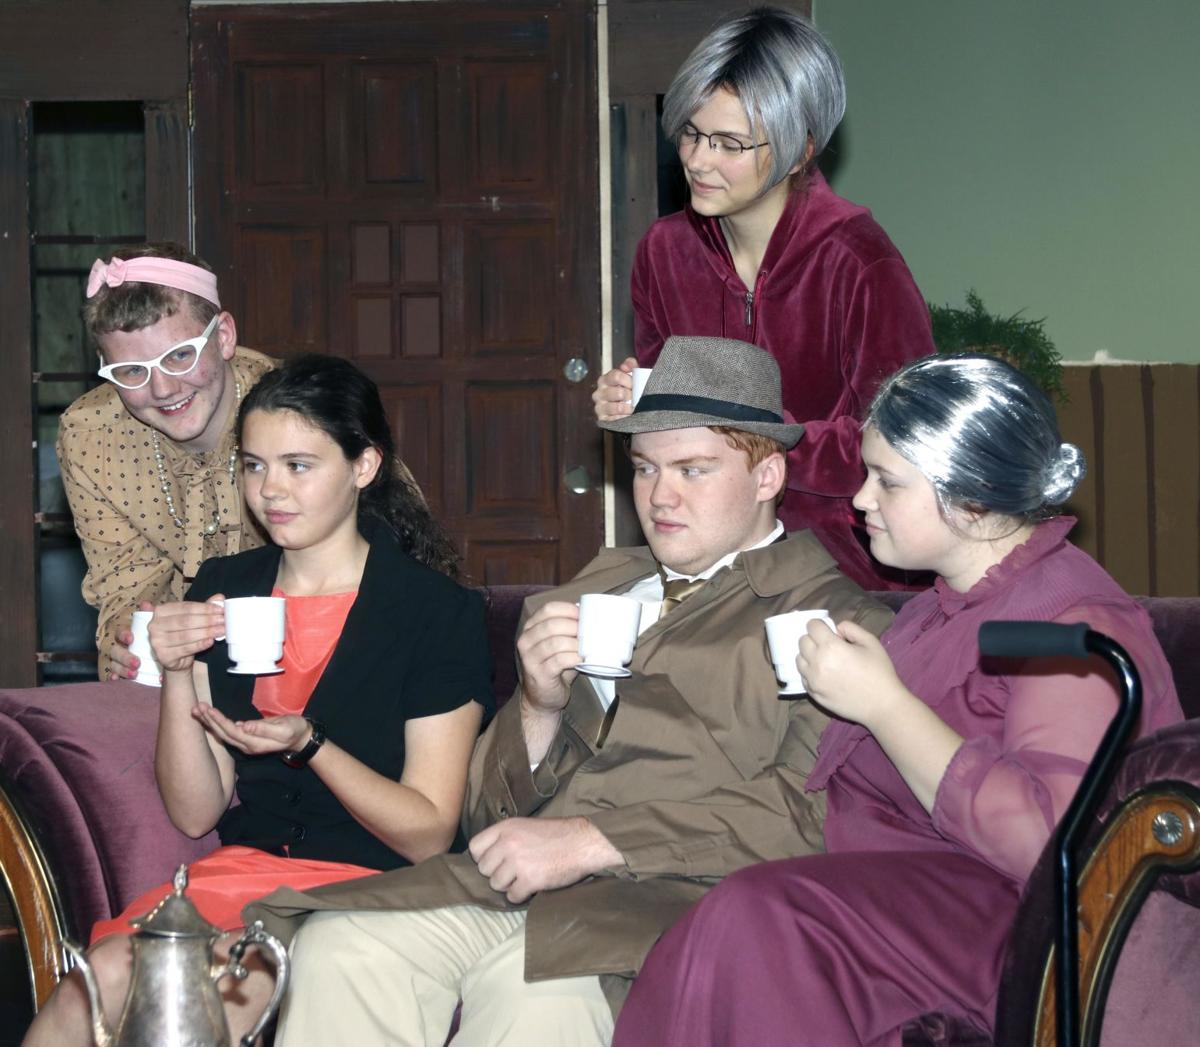 A STIFF DRINK: Cup of tea is murder weapon in North Branch comedy